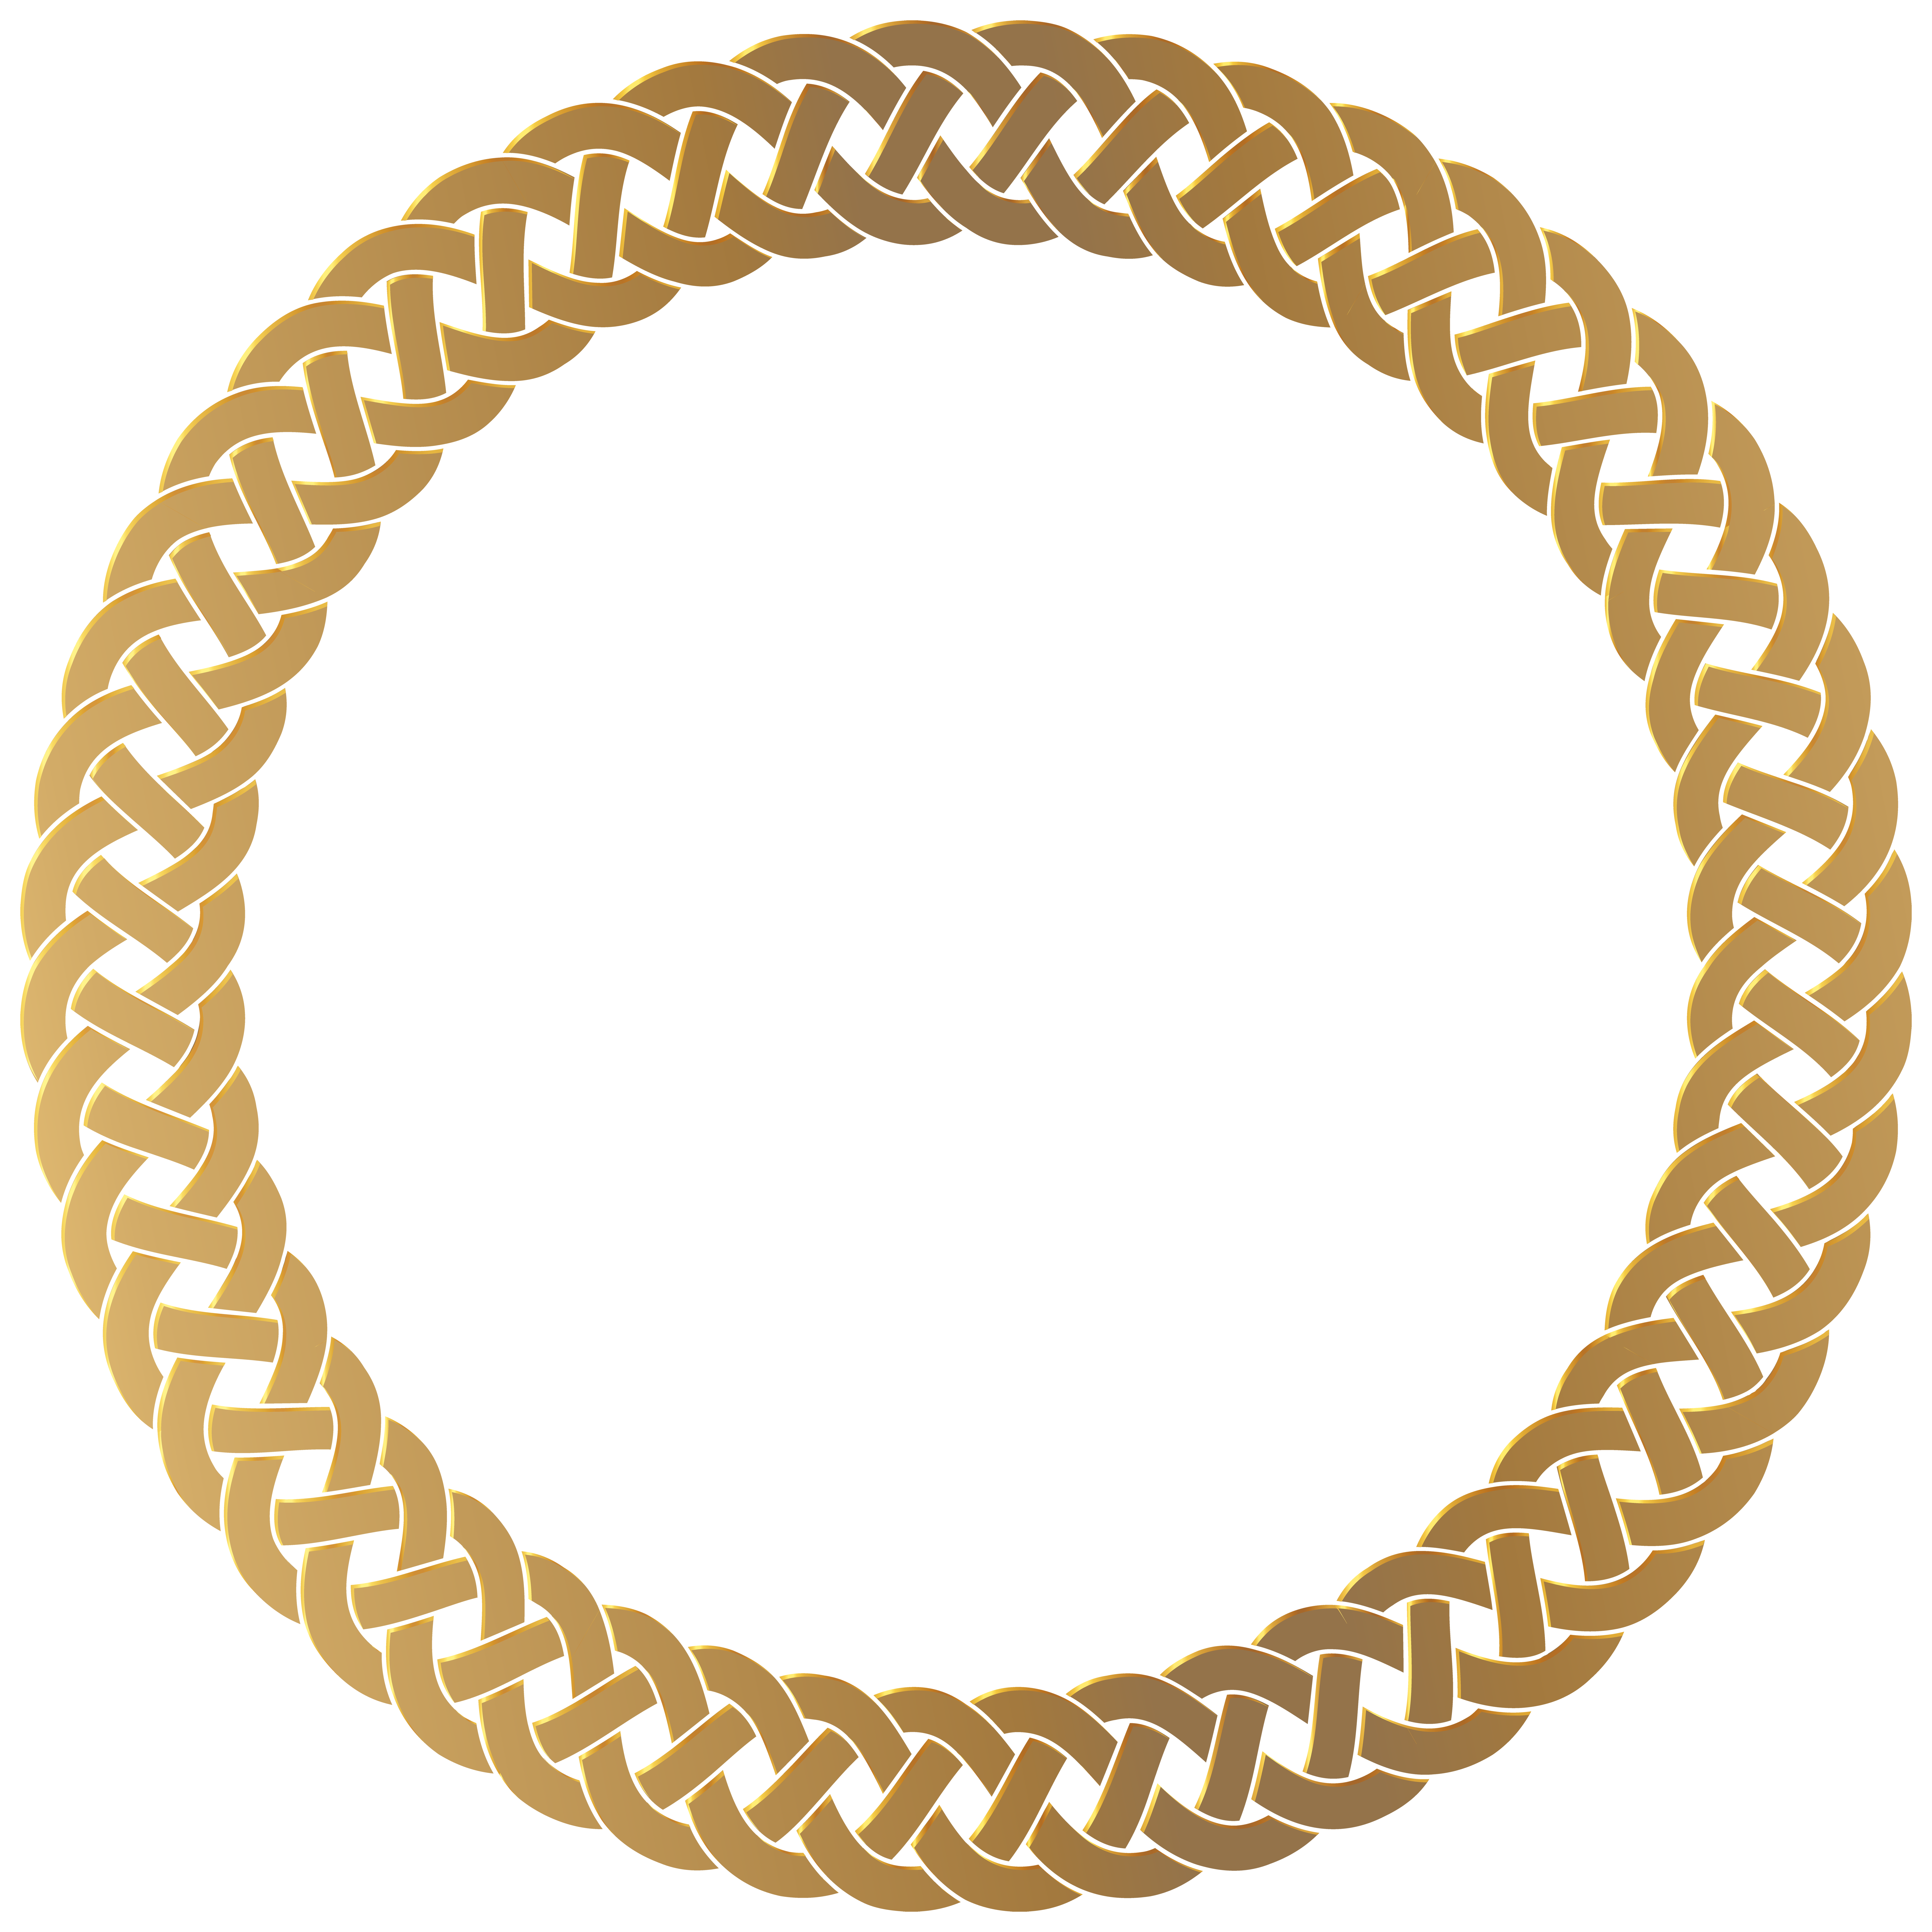 King crown circle border clipart image library Golden Round Frame Border Transparent PNG Clip Art | Gallery ... image library